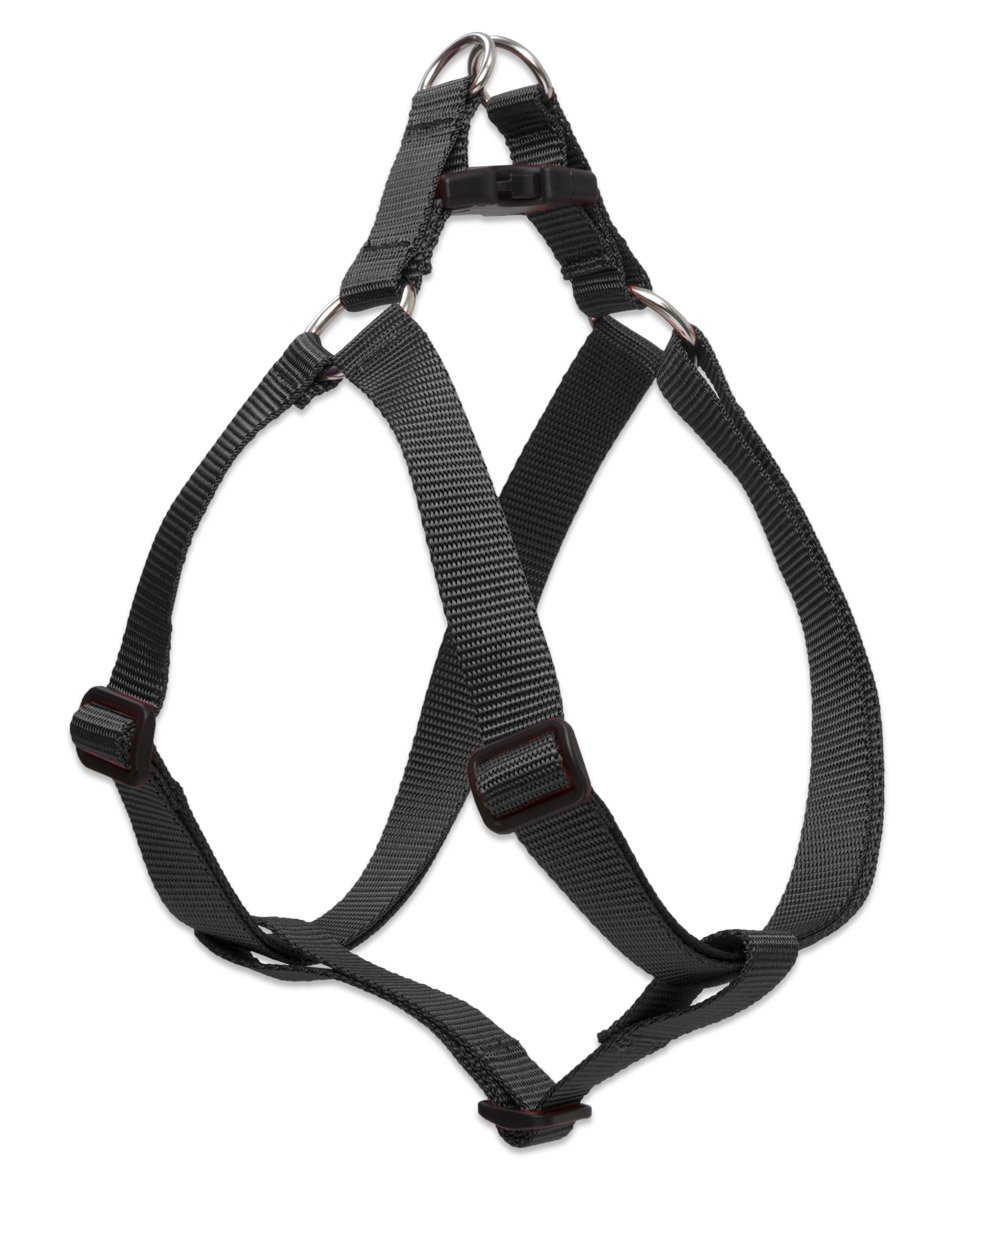 Lupine Step-In Harness for Larger Dogs, 19 to 28-Inch Girth, 1-Inch Wide, Black